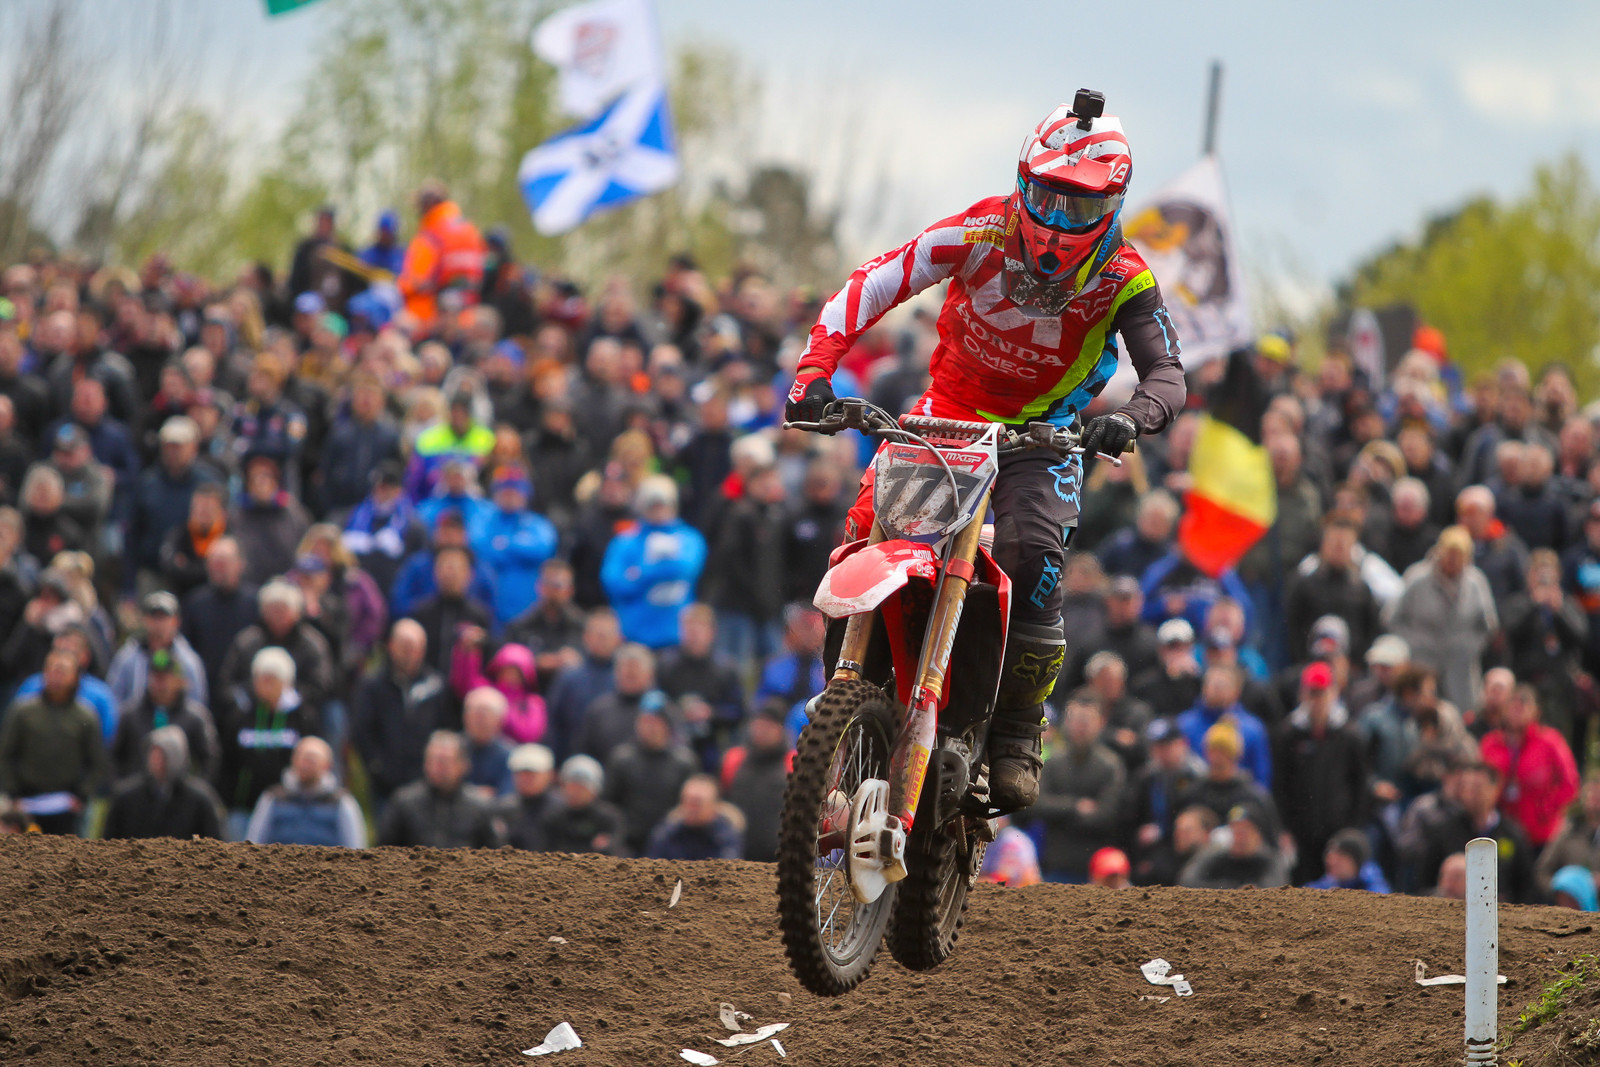 Evgeny Bobryshev - Photo Blast: 2017 MXGP of Valkenswaard - Motocross Pictures - Vital MX